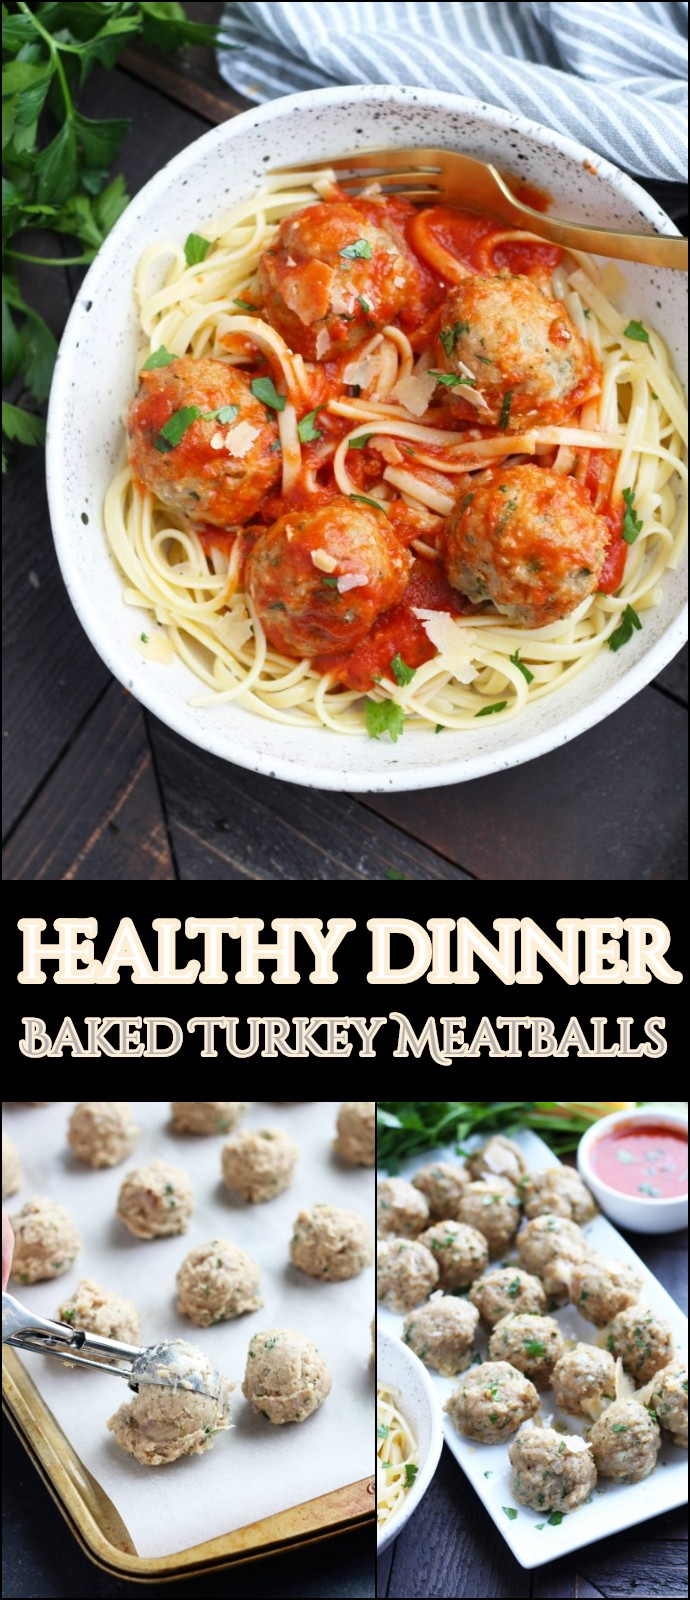 healthy dinner Baked Turkey Meatballs